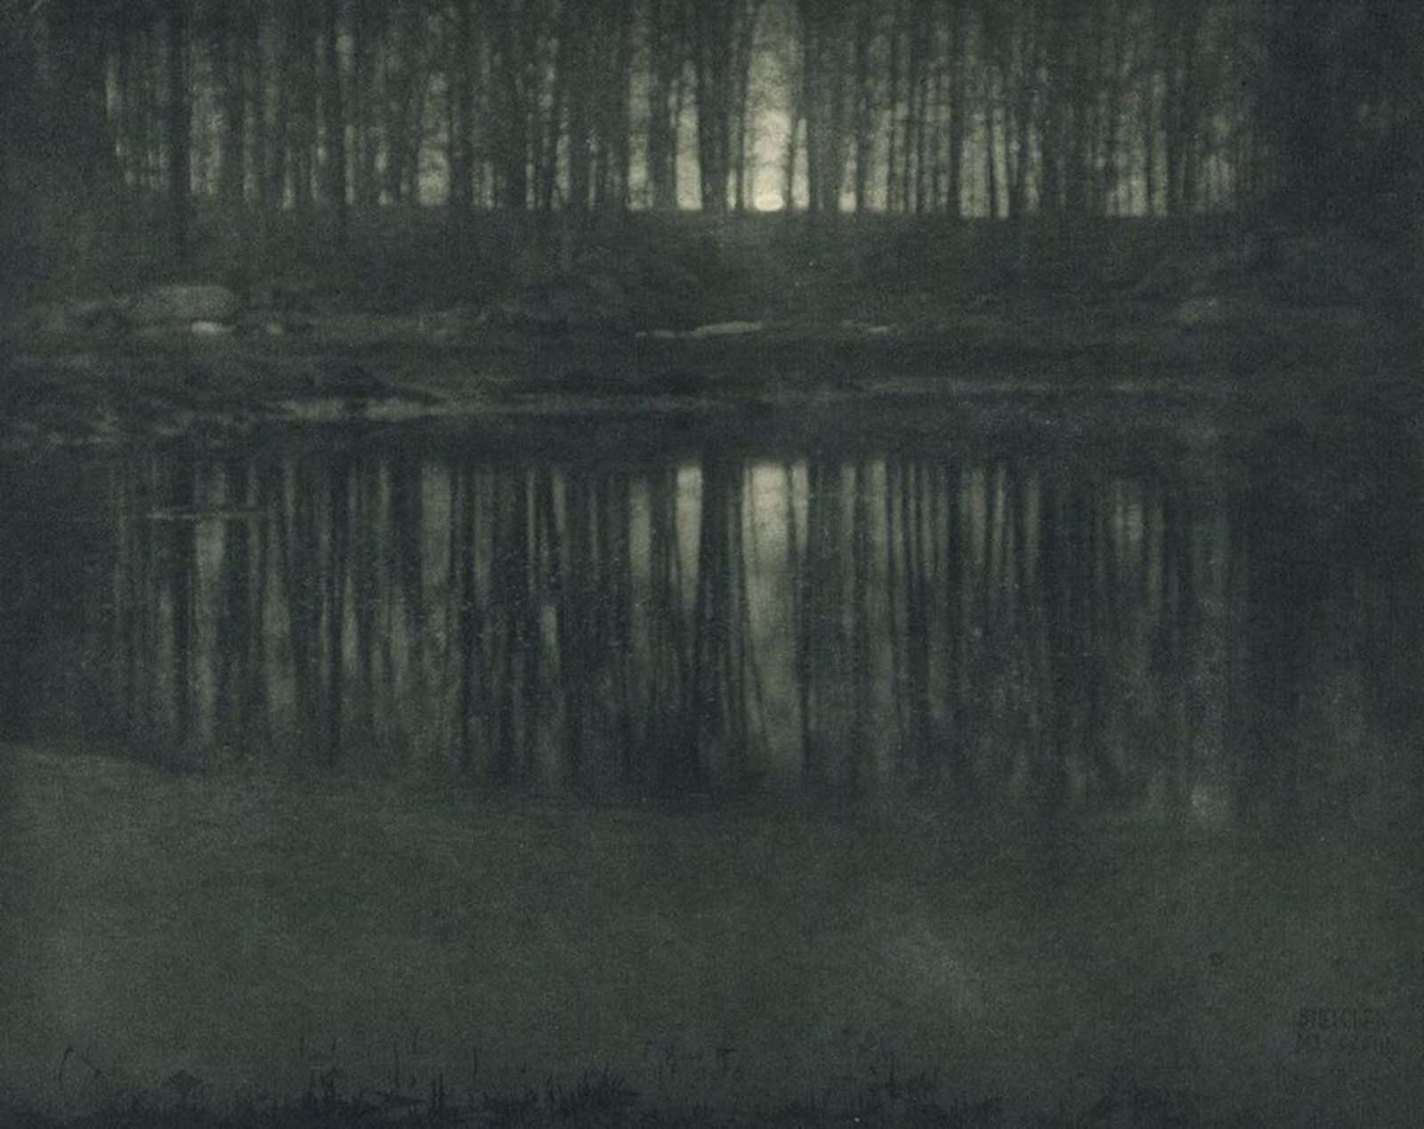 Moonlight- The Pond, Edward Steichen, 1904 most expensive photographs in history